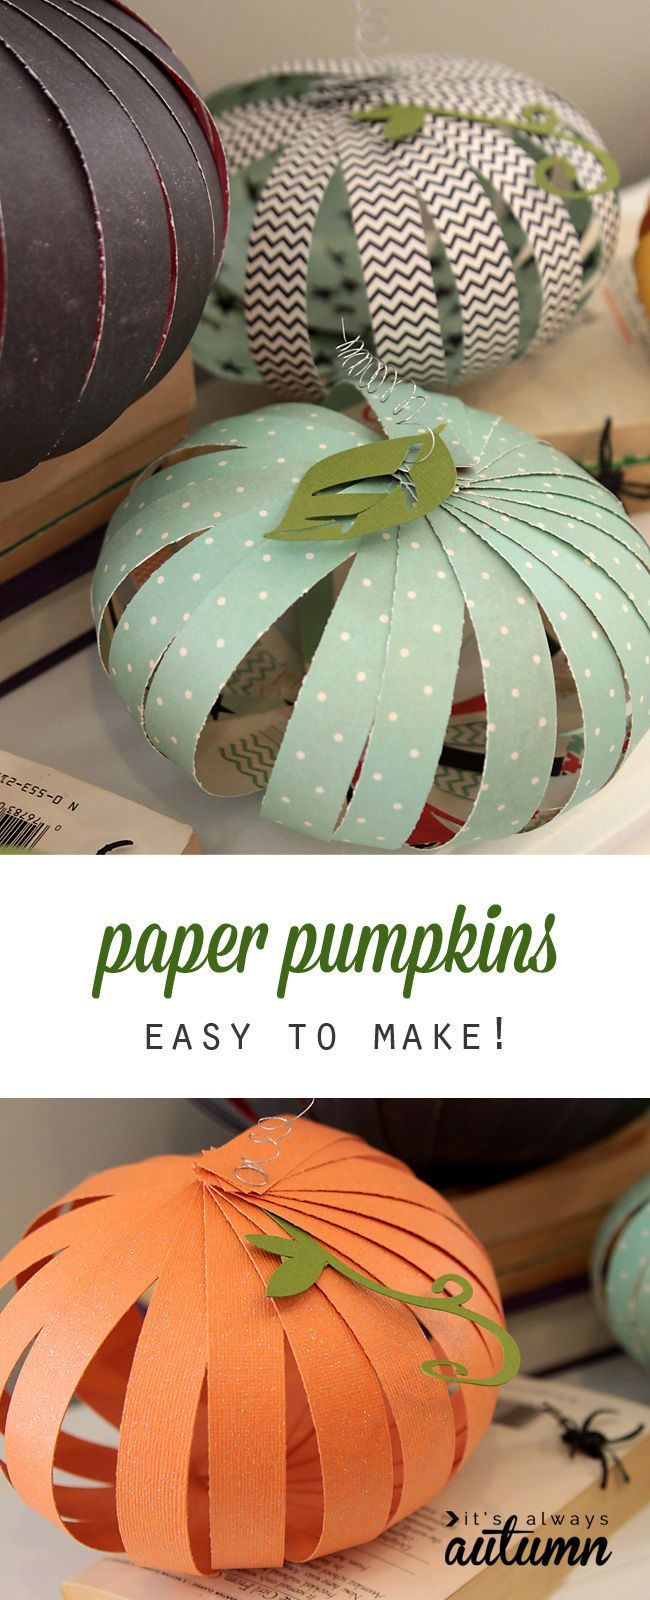 34++ Cute and easy crafts with paper ideas in 2021